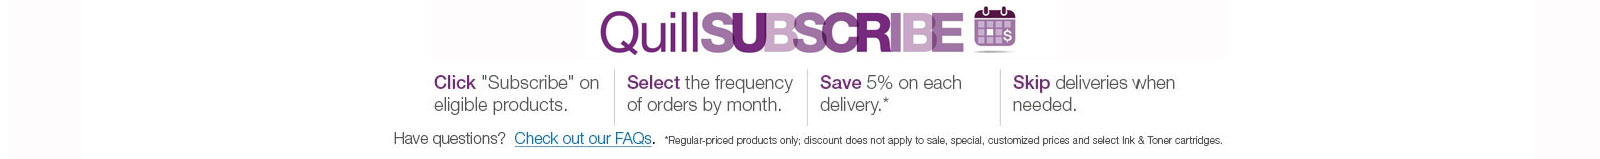 QuillSUBSCRIBE Save up to 5% while simplifying your job.